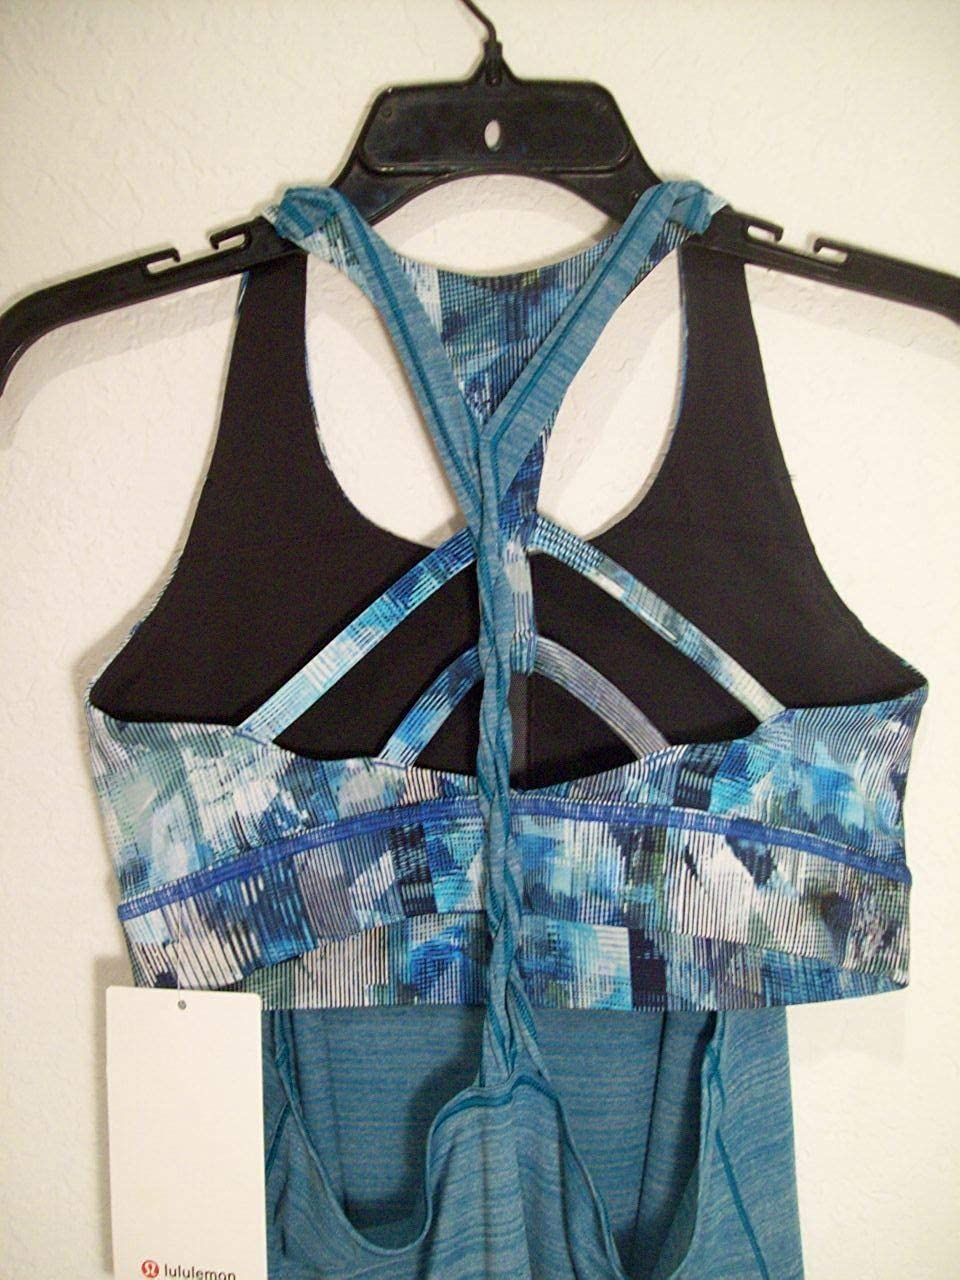 a2a4231c30 Amazon.com  Lululemon Women s Twist and Toil Tank Heathered Teal W Build in  Bra Support C D Cup- Rare- sz 8  Clothing